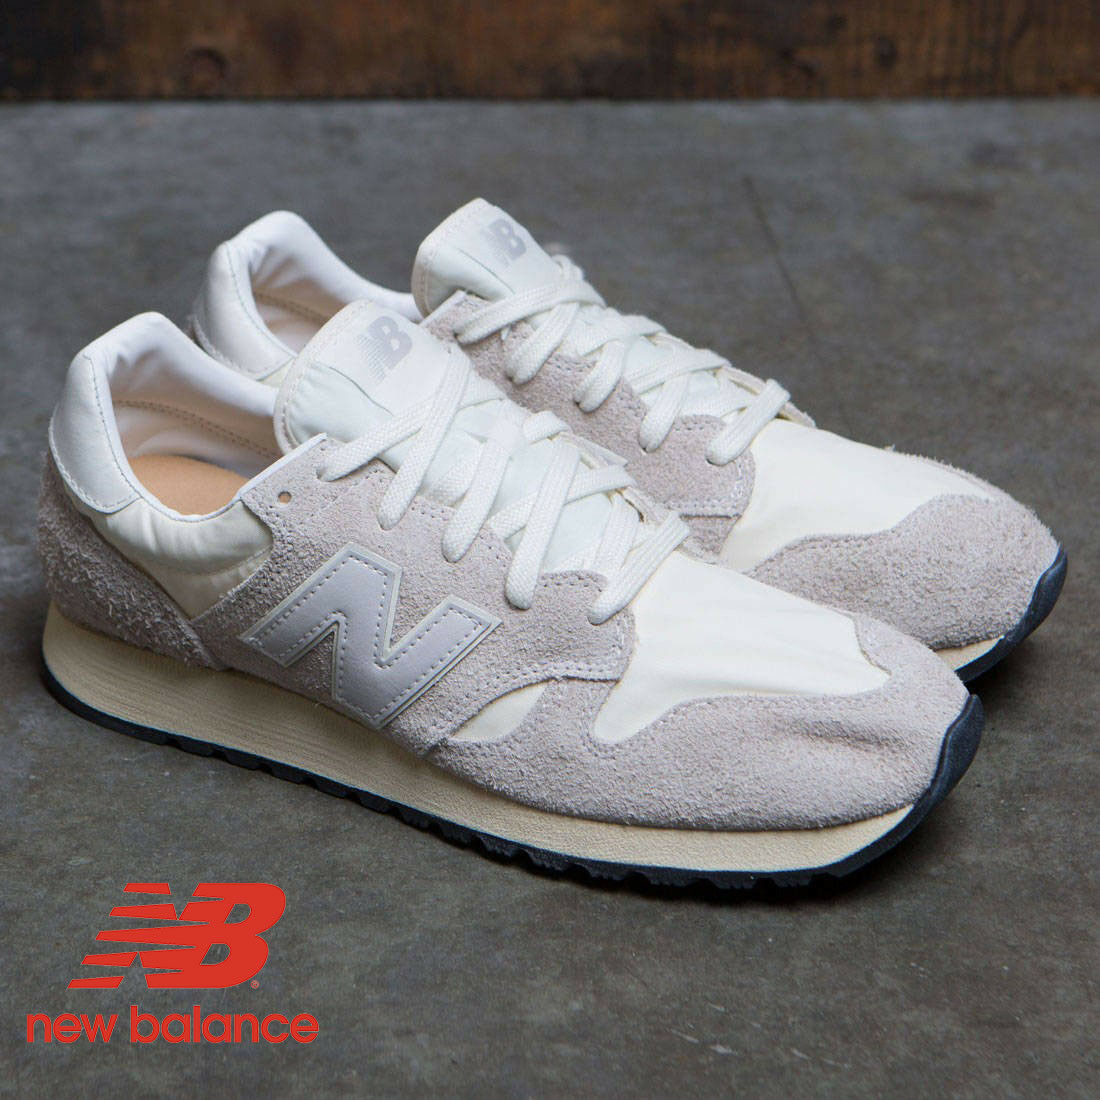 New Balance 520 Retro Men's Sneakers White Grey Suede Size 7 NEW in BOX